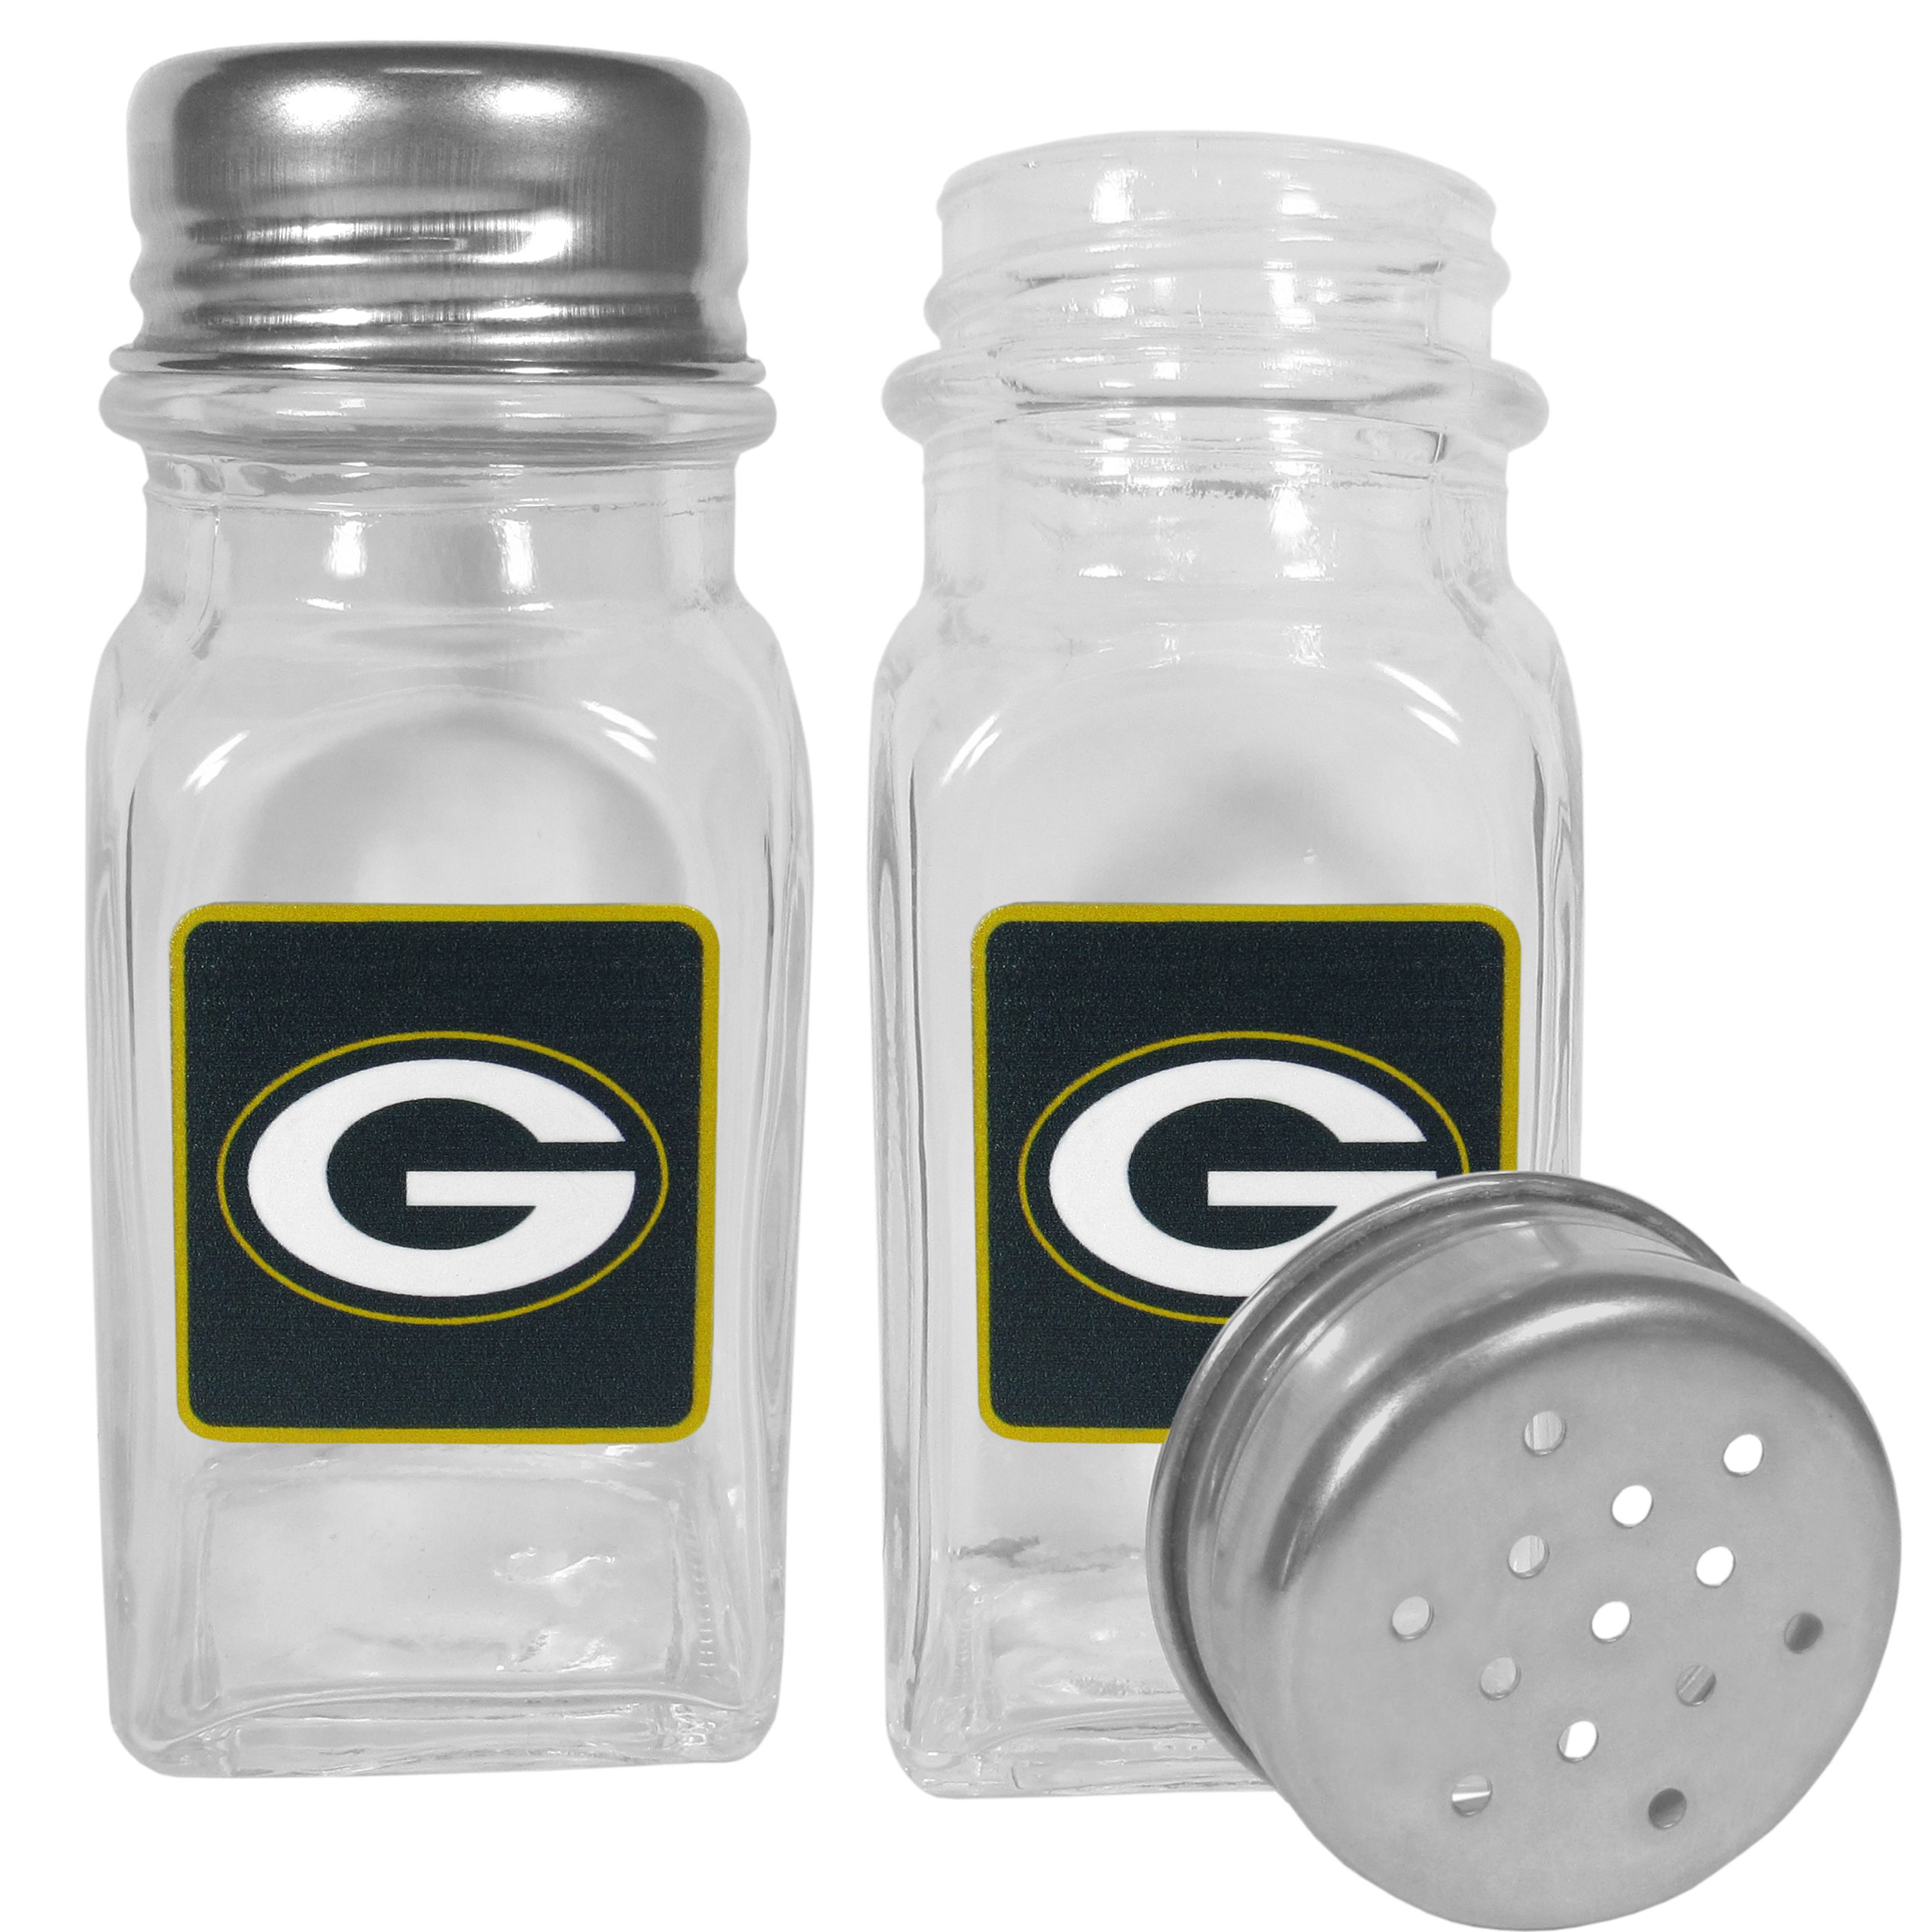 Green Bay Packers Graphics Salt and Pepper Shaker - No tailgate party is complete without your Green Bay Packers salt & pepper shakers featuring bright team logos. The diner replica salt and pepper shakers are glass with screw top lids. These team shakers are a great grill accessory whether you are barbecuing on the patio, picnicing or having a game day party.